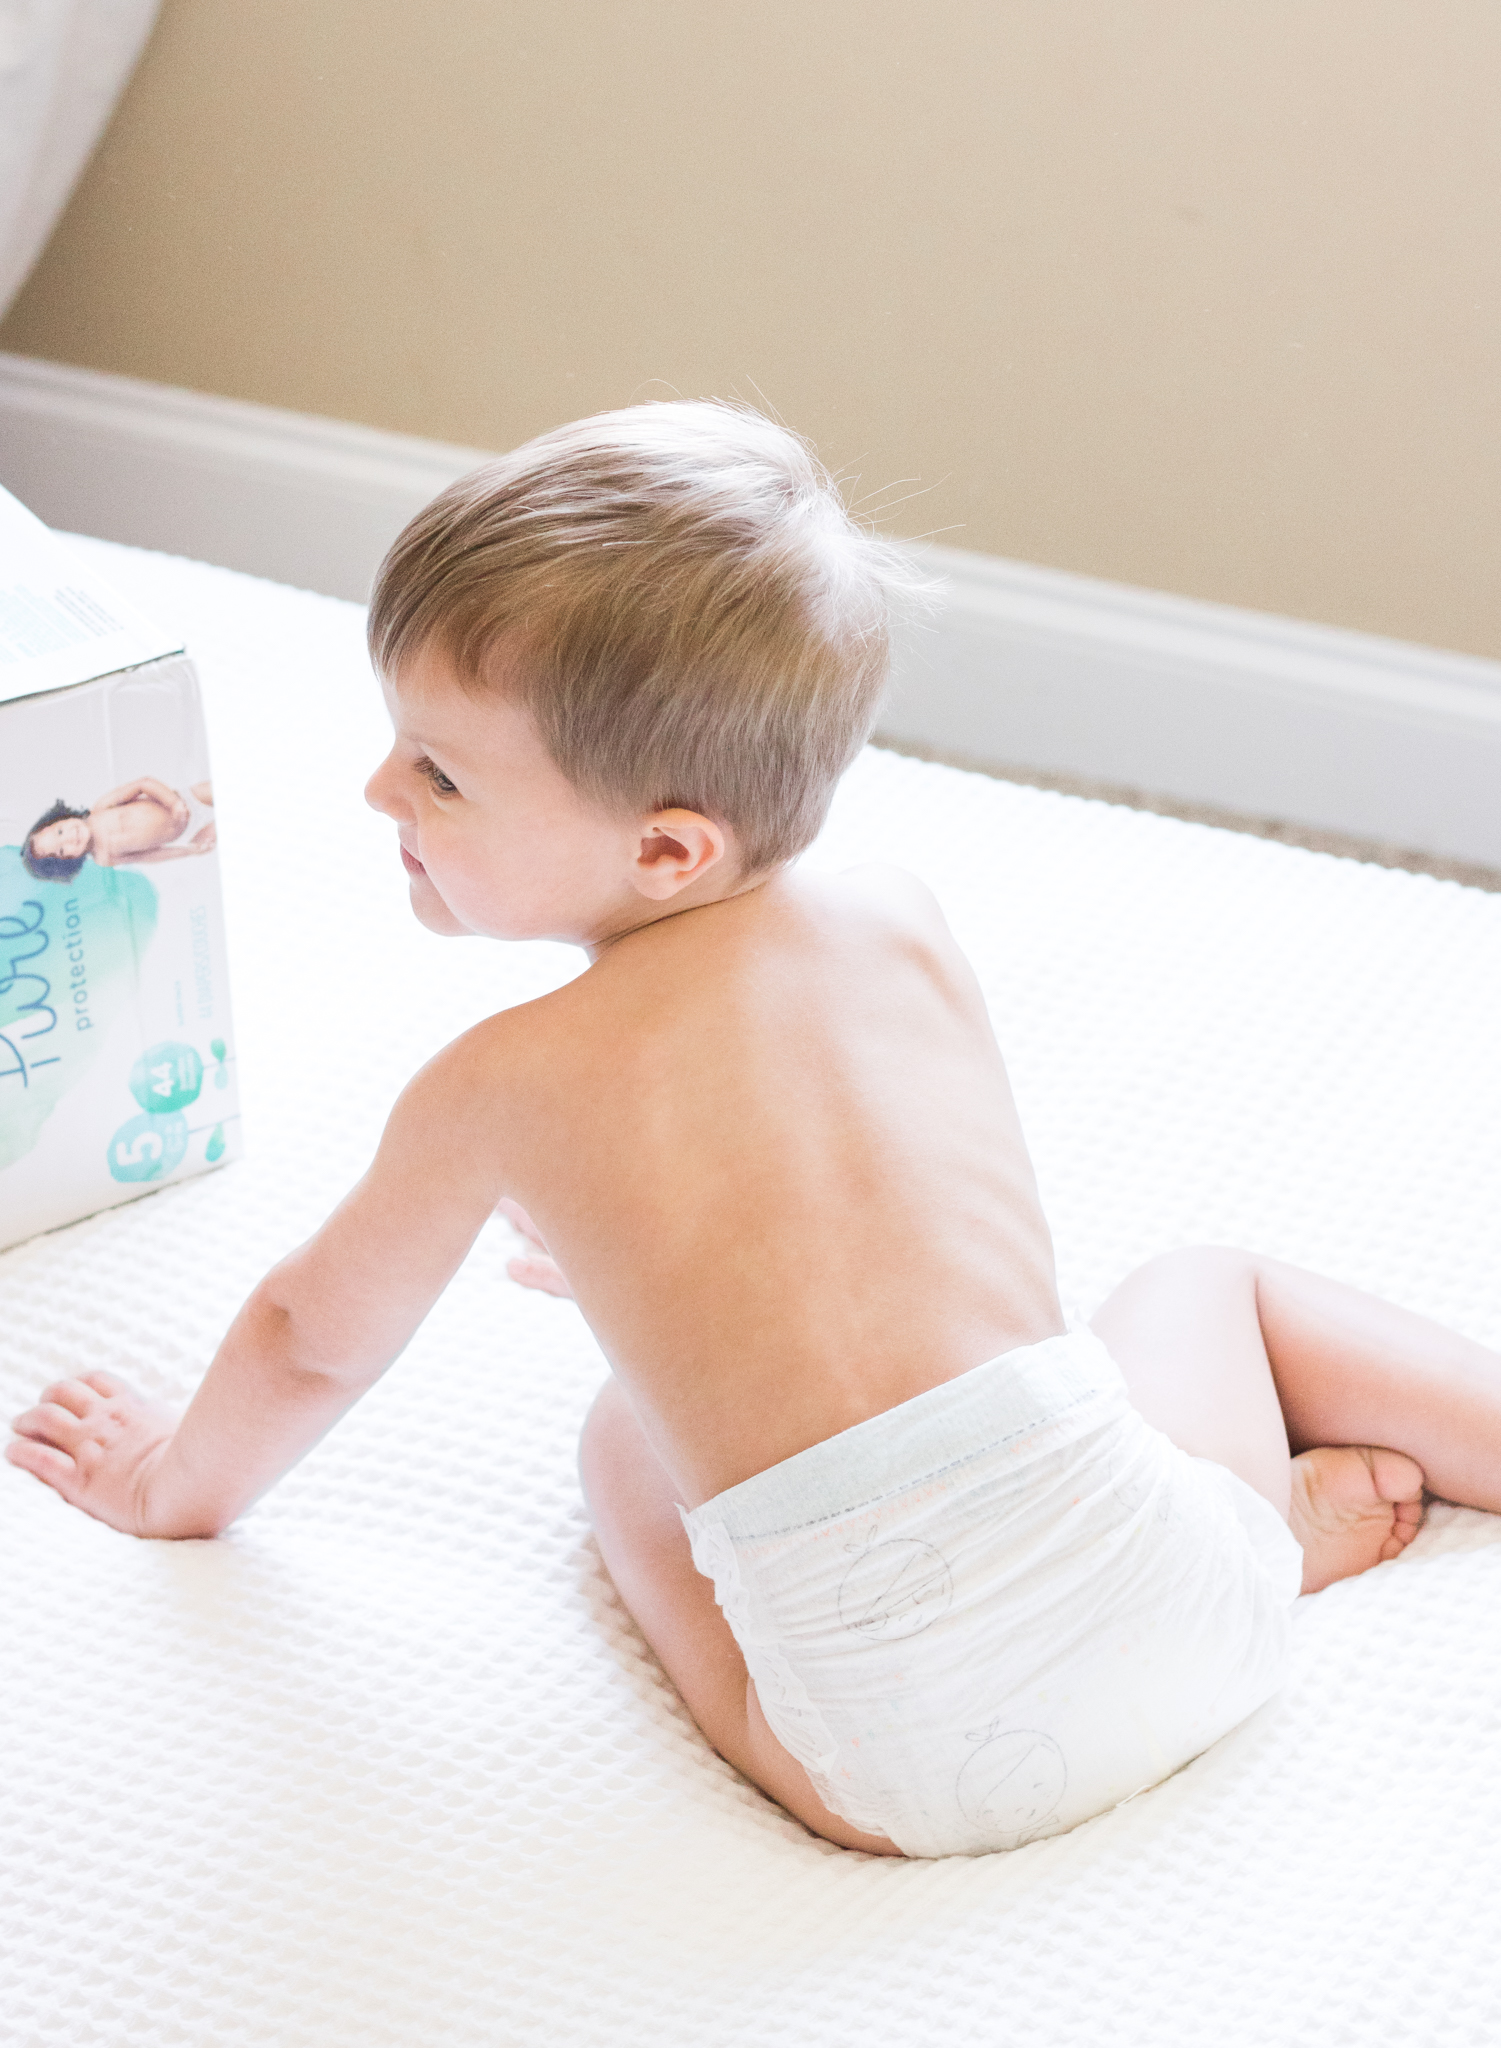 We Recently Switched our Baby's Diapers- and You Should Too!